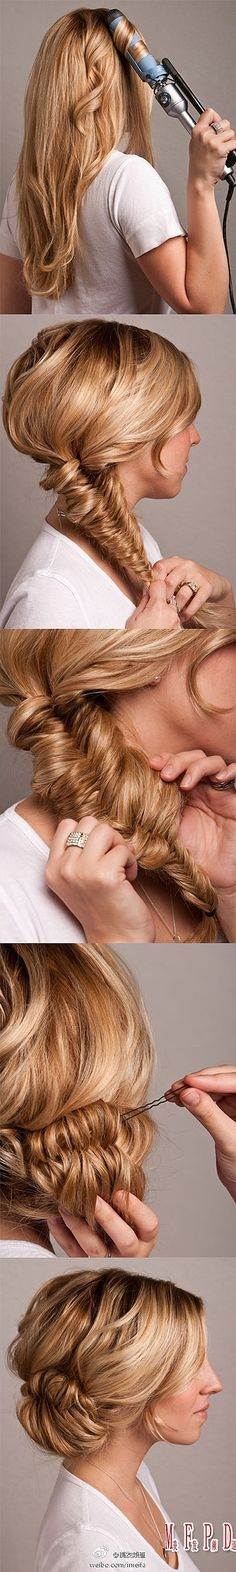 Love this! #hair #braids